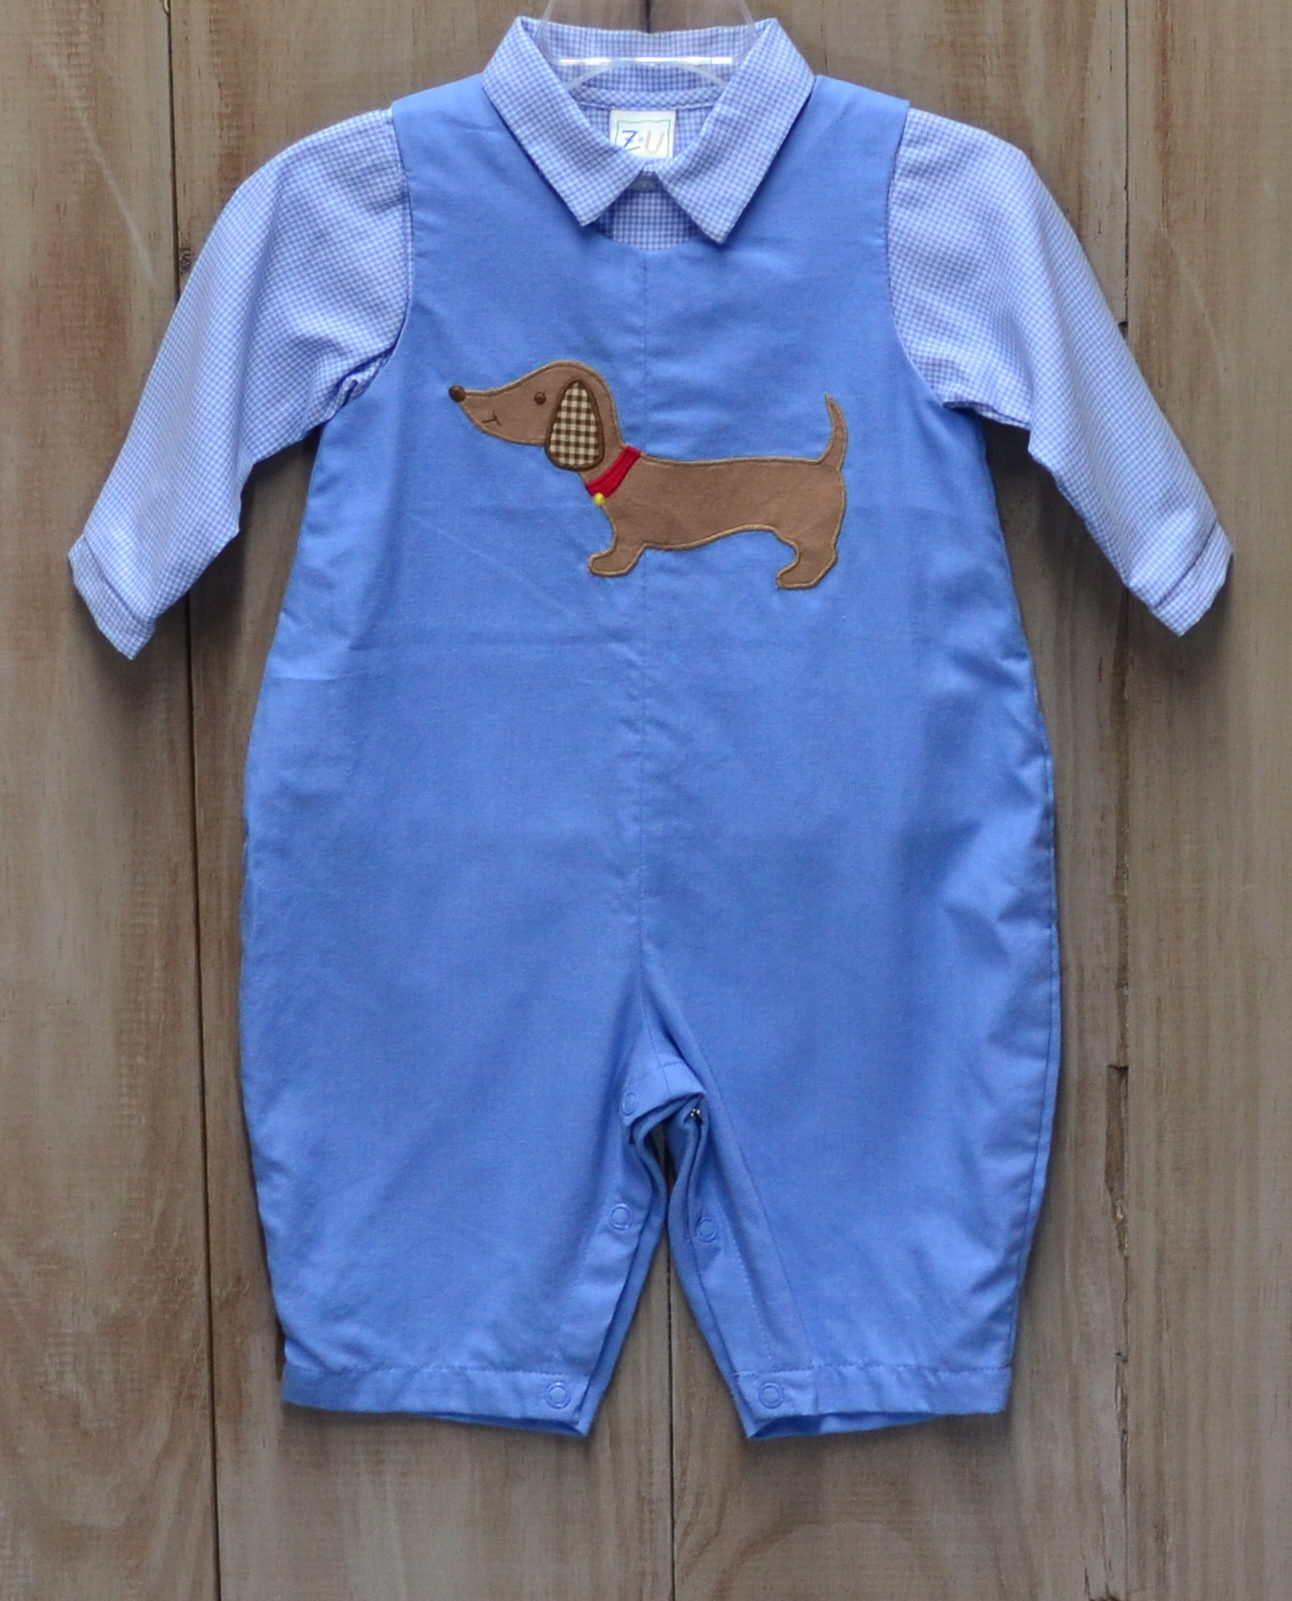 faa14e65f Blue Overall Set With Dog Applique